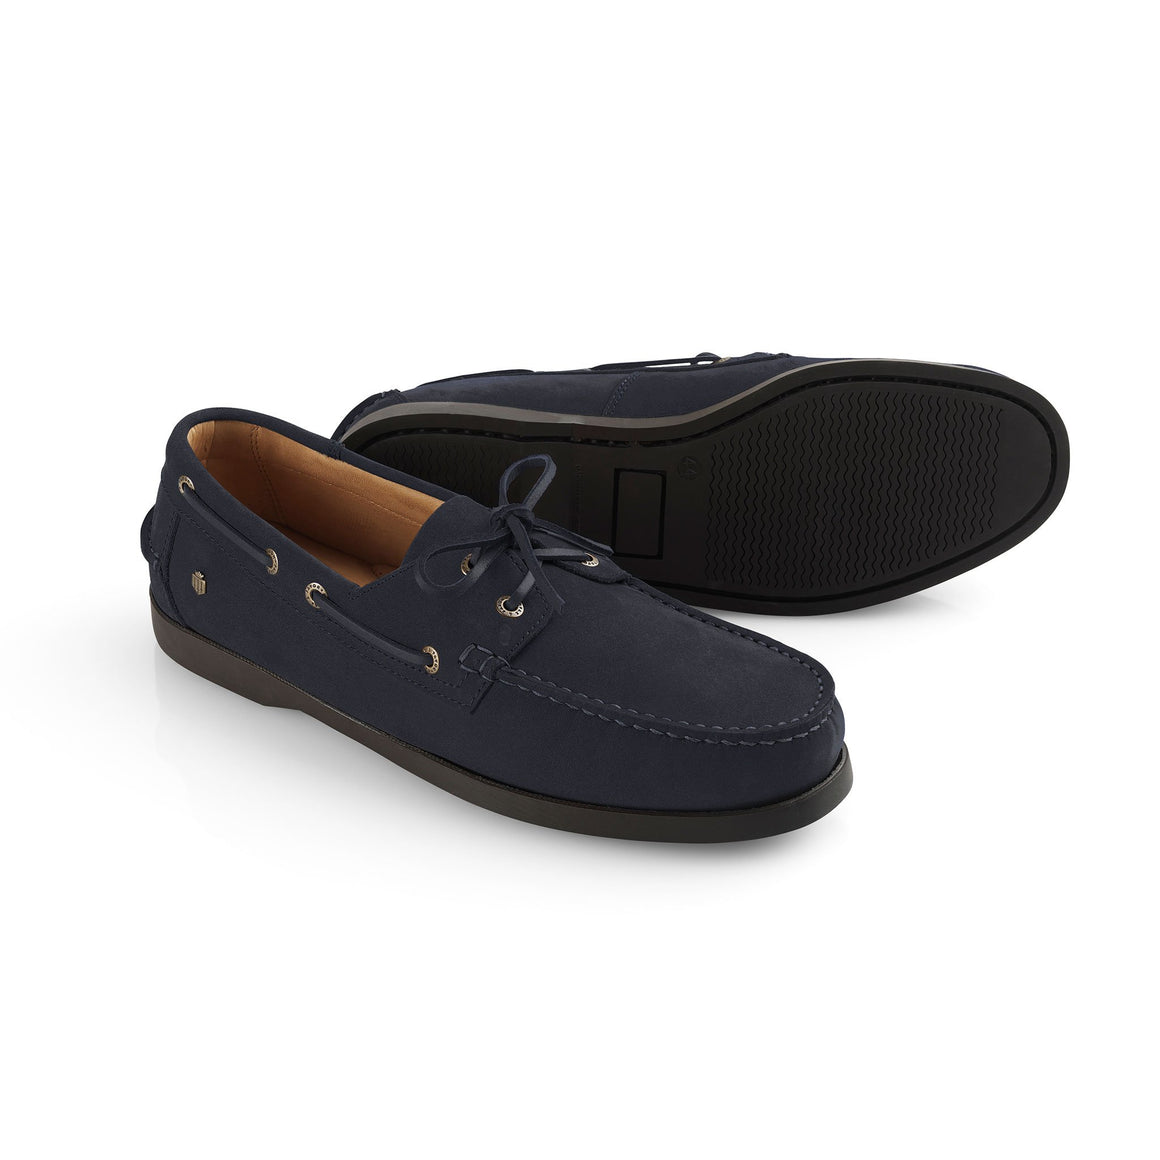 Fairfax & Favor Padstow mens deck shoe in navy